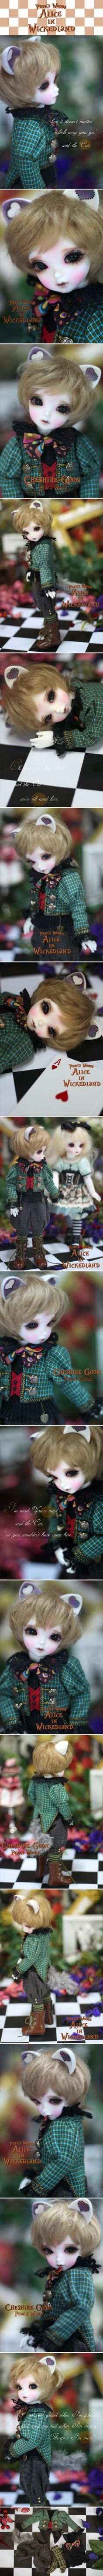 Peakswoods - FOF - Cheshire Goon [Peakswoods - FOF - Cheshire Goon] - $252.00 : DollHeart, by DollHeart.com